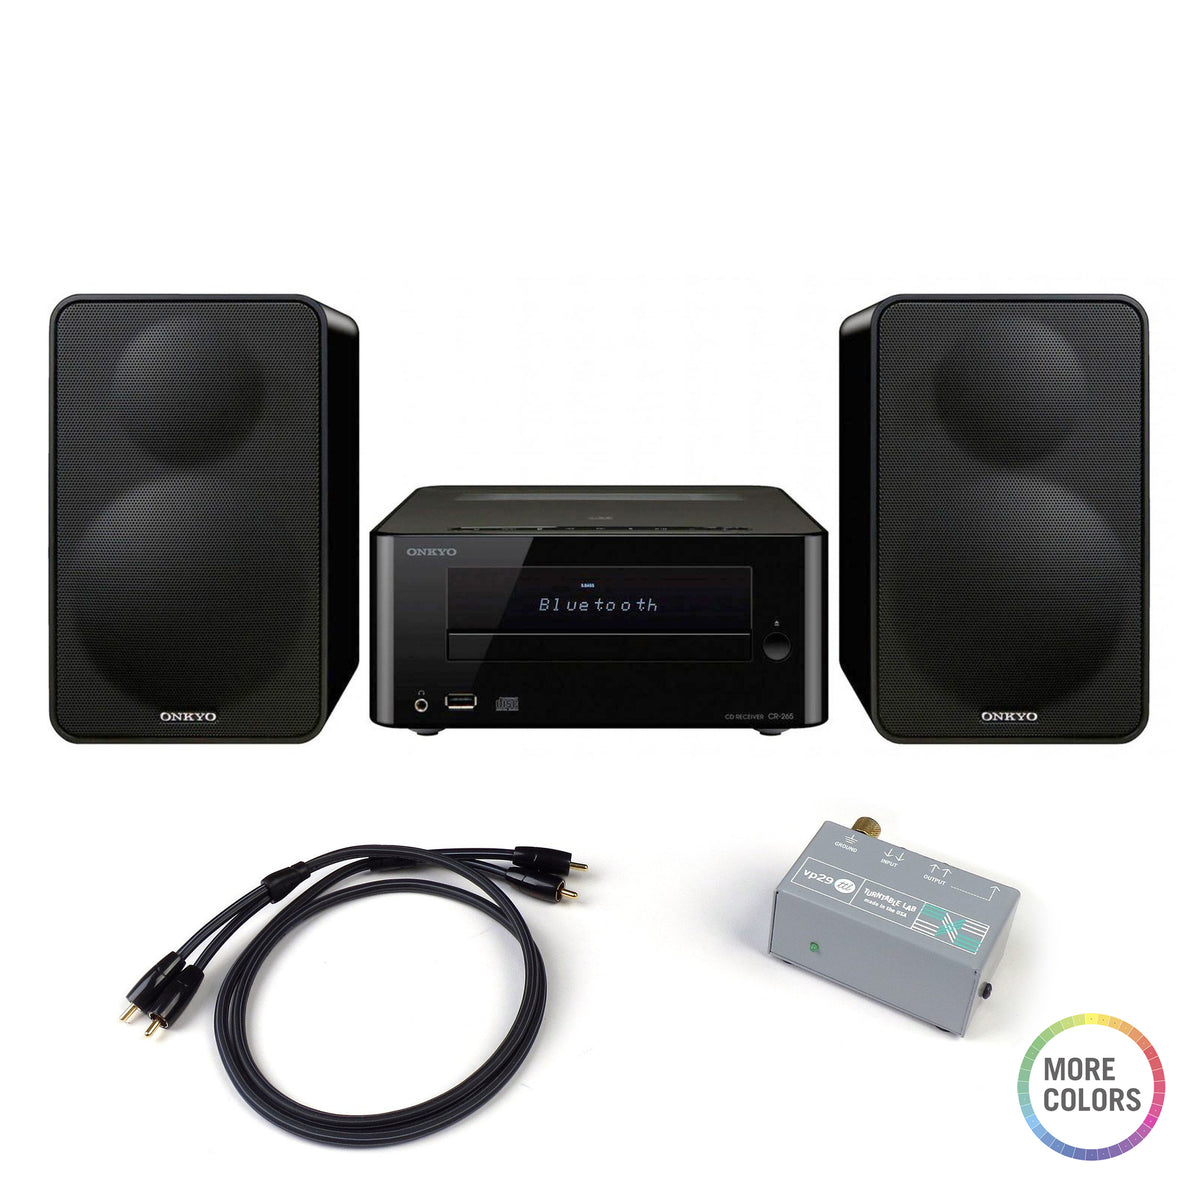 Onkyo: CS-265 Colibrino Mini Hi-Fi System + Phono Preamp Package